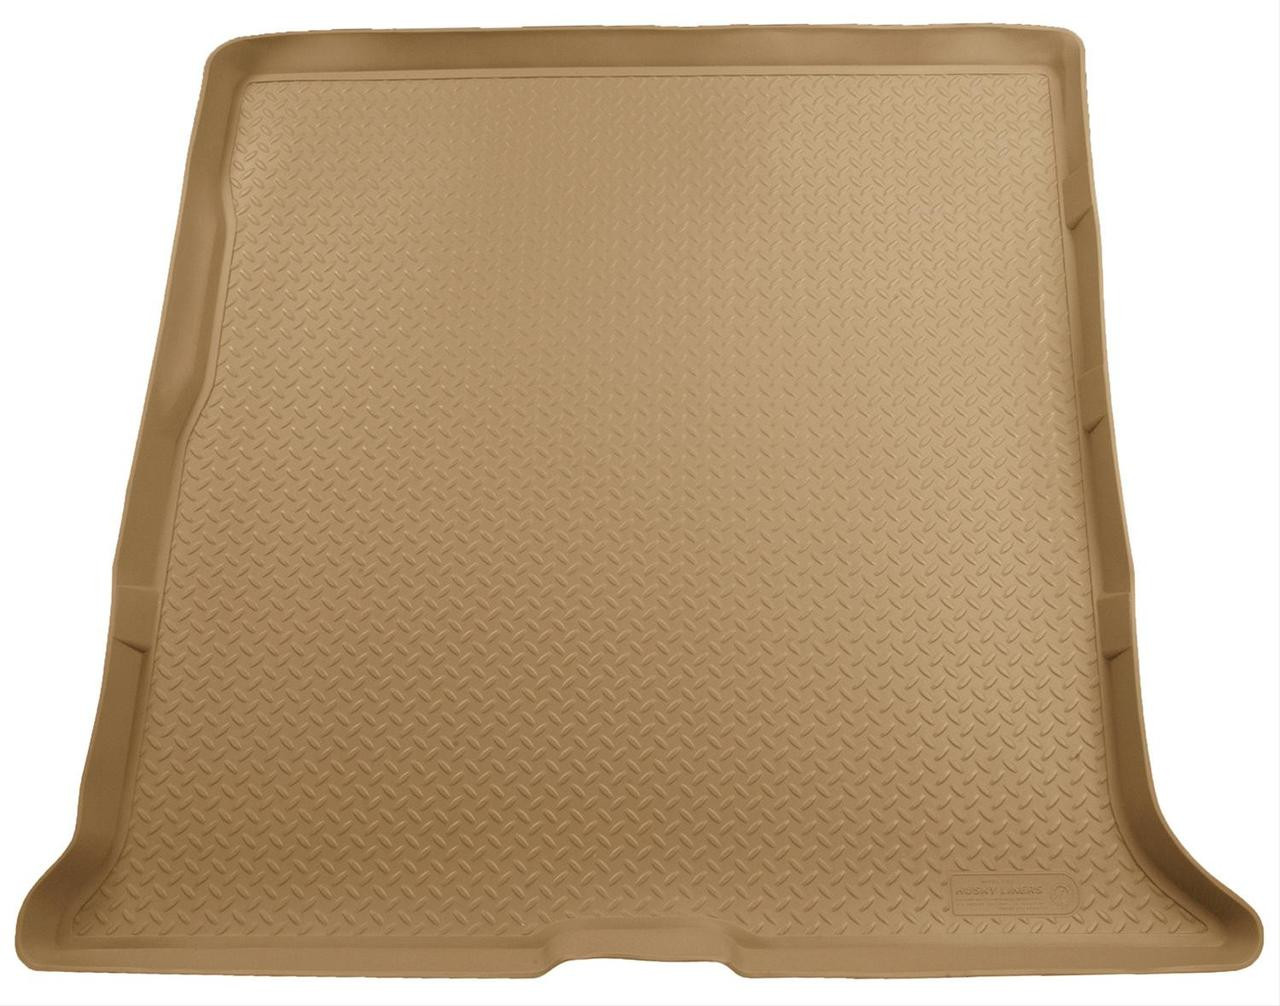 03-14 EXPEDITION/NAVIGATOR (CARGO LINER BEHIND 2ND SEAT OVER FOLDED FLAT 3RD SEAT) REAR LINER TAN